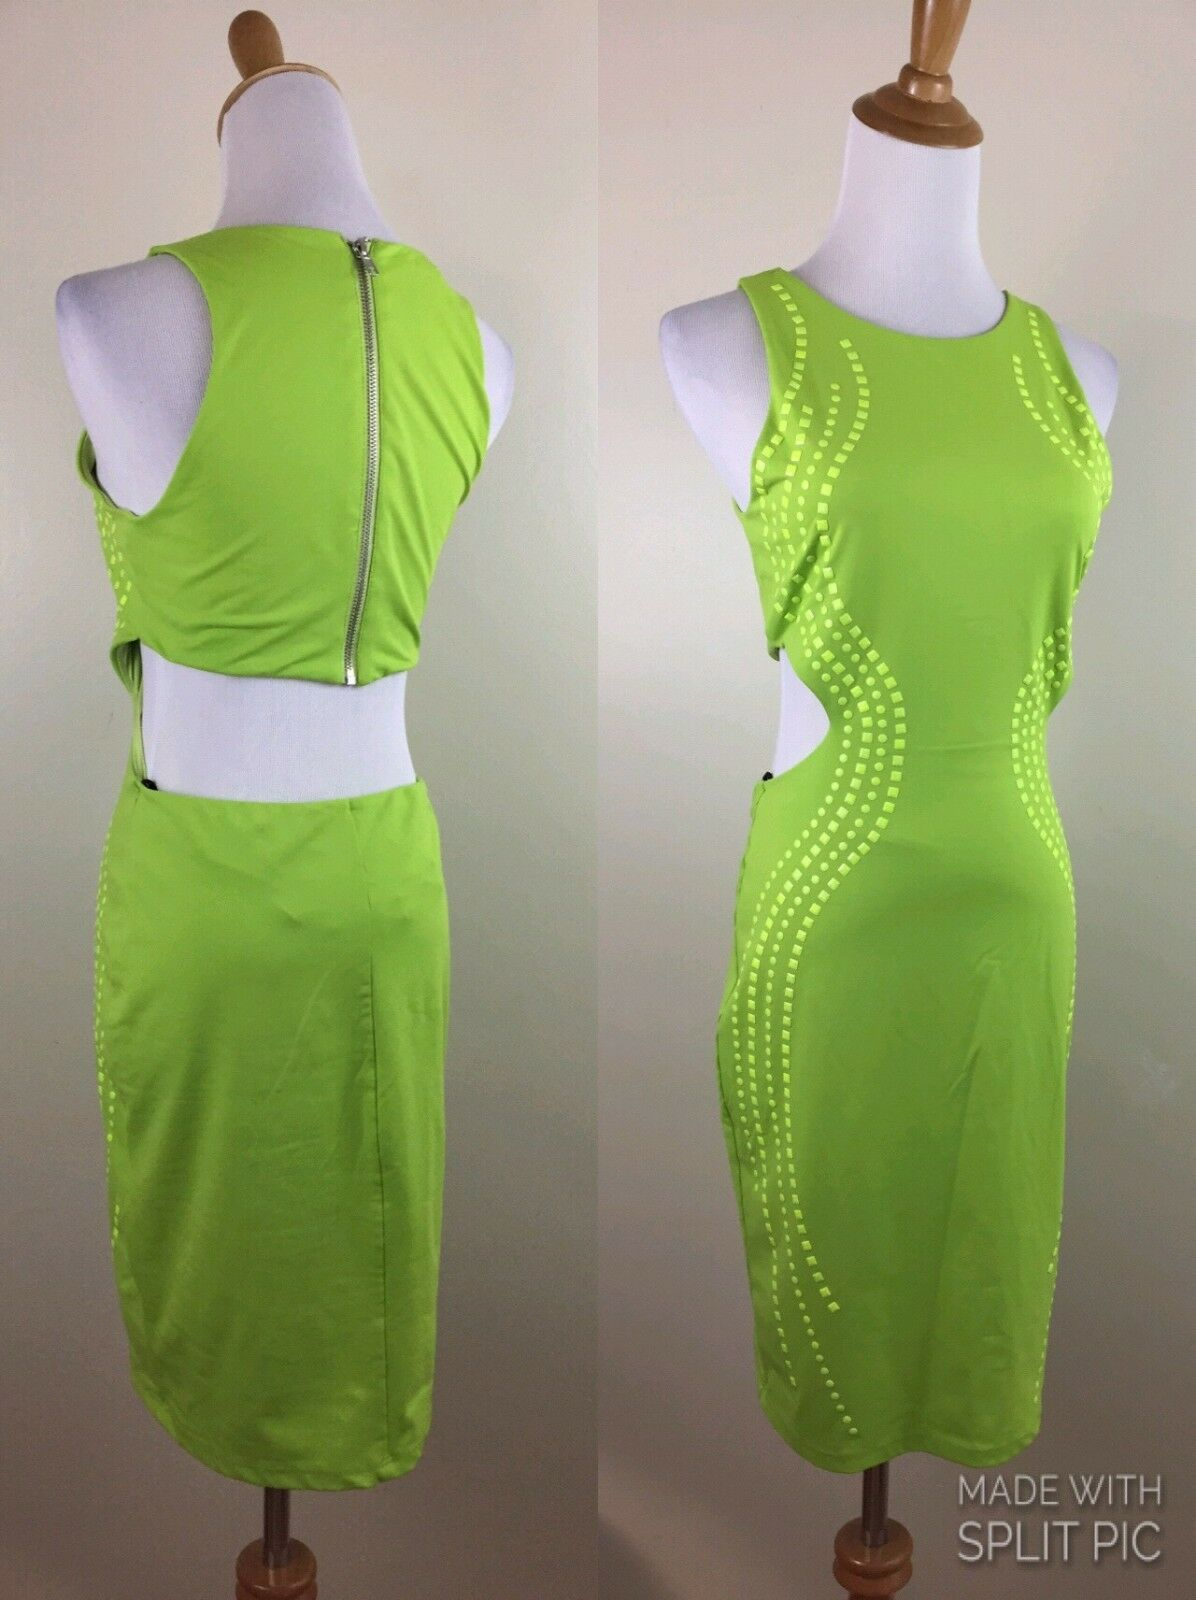 Bebe Womens M Medium Bright Green Studded Cut Out Fitted Stretch Bodycon Dress